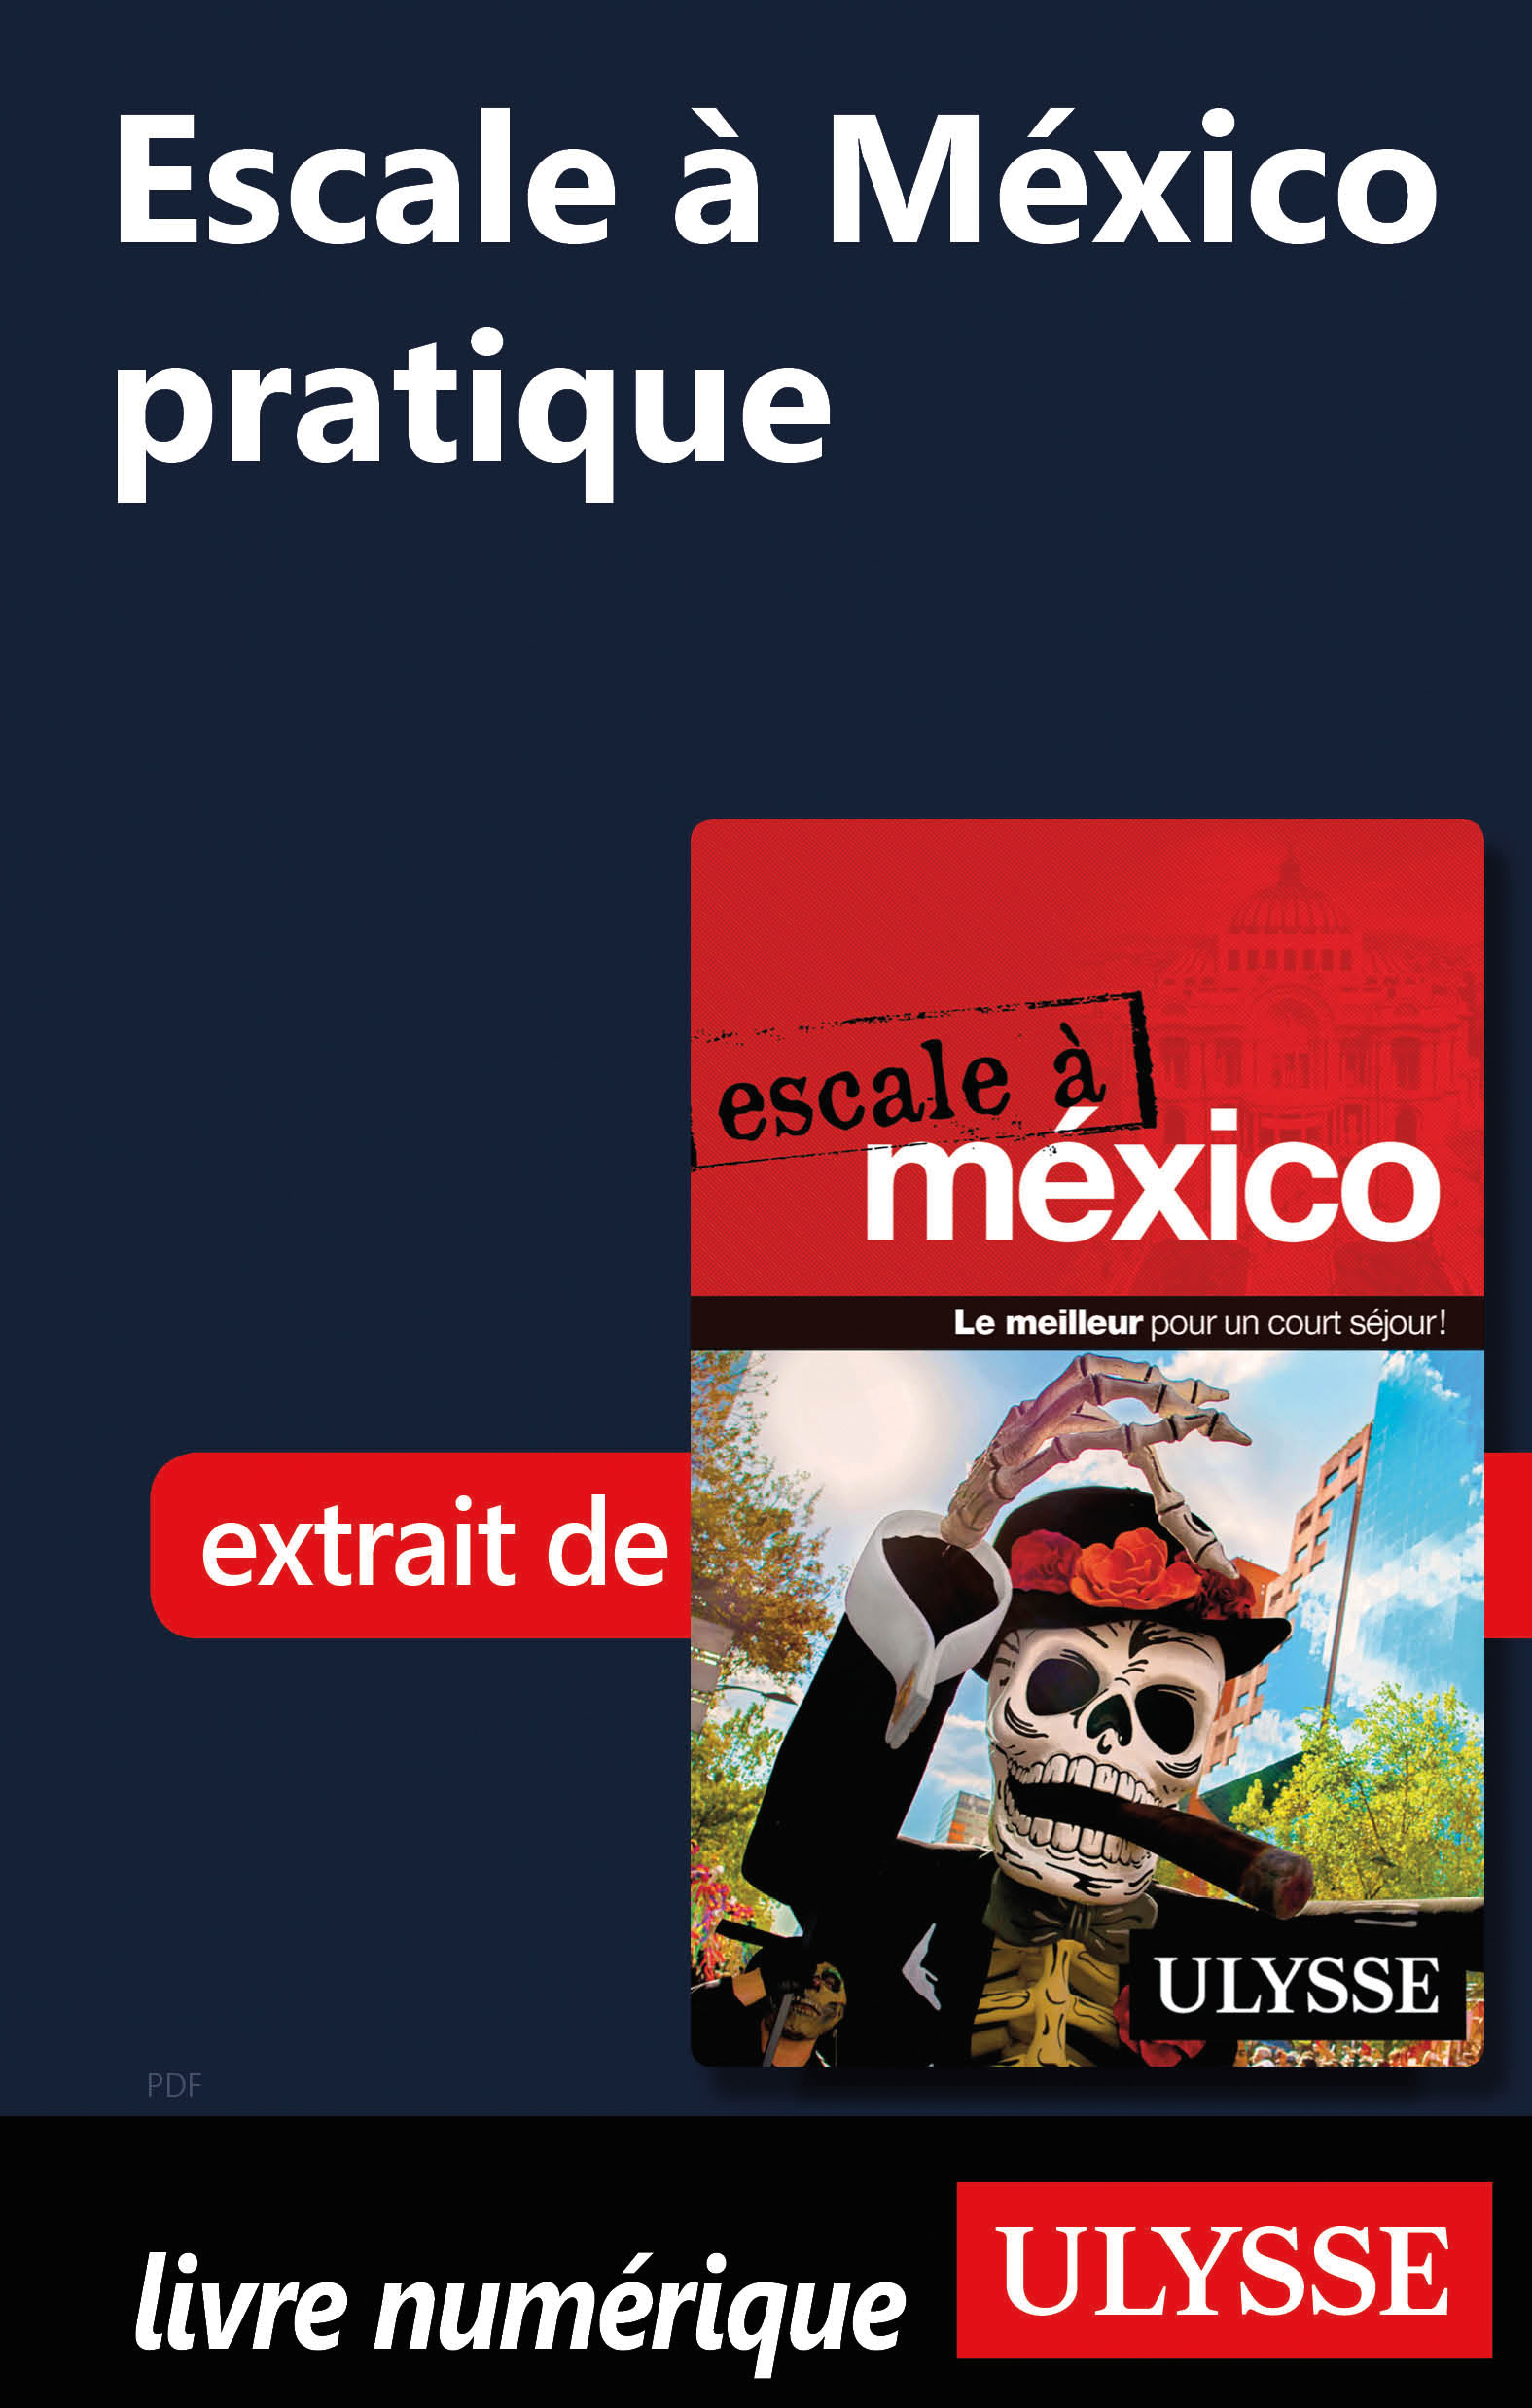 Escale à México pratique